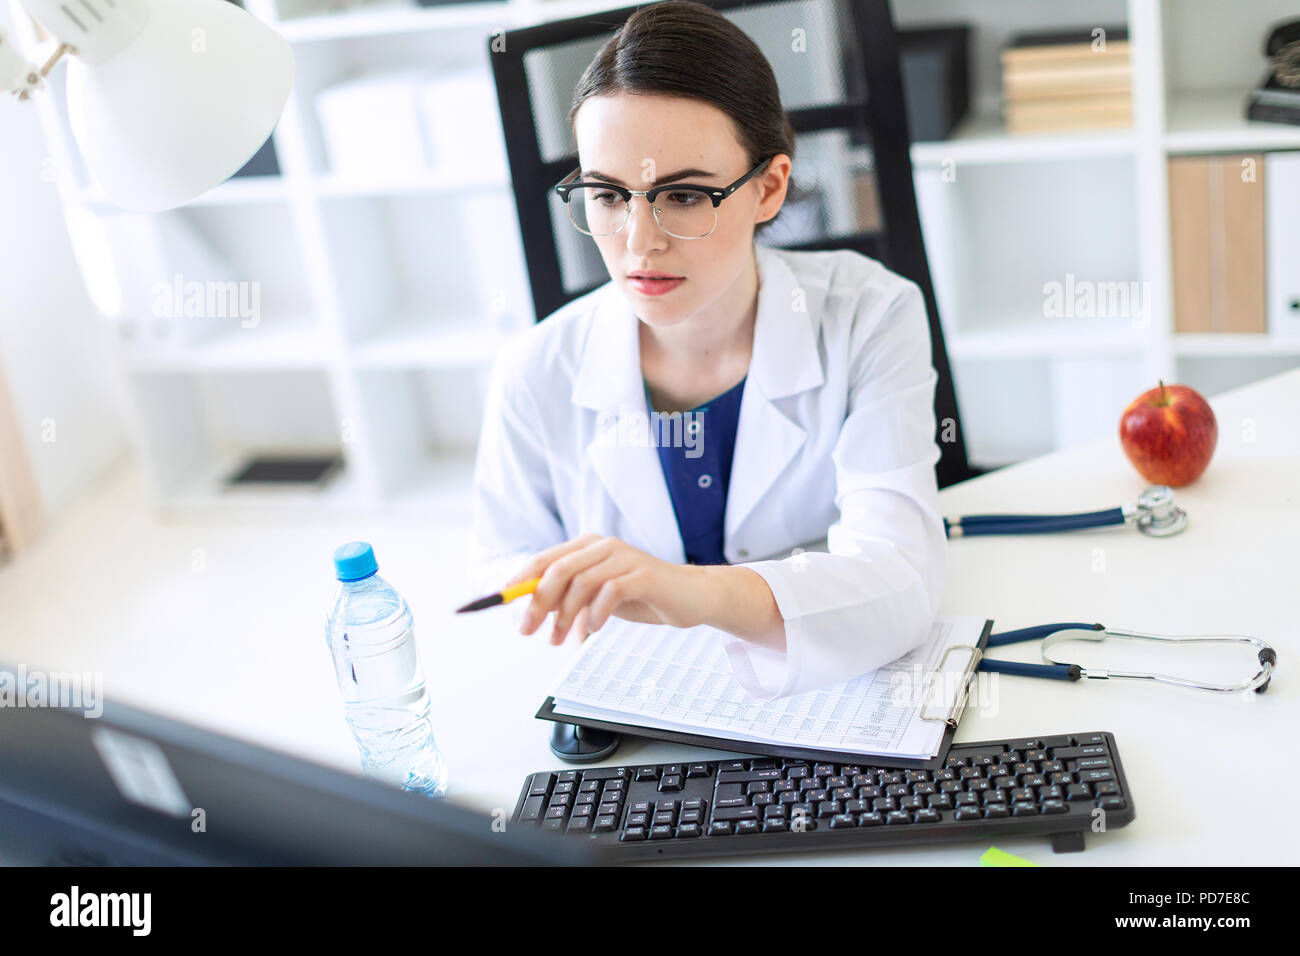 A beautiful young girl in a white robe is sitting at a computer desk with documents and a pen in her hands. - Stock Image